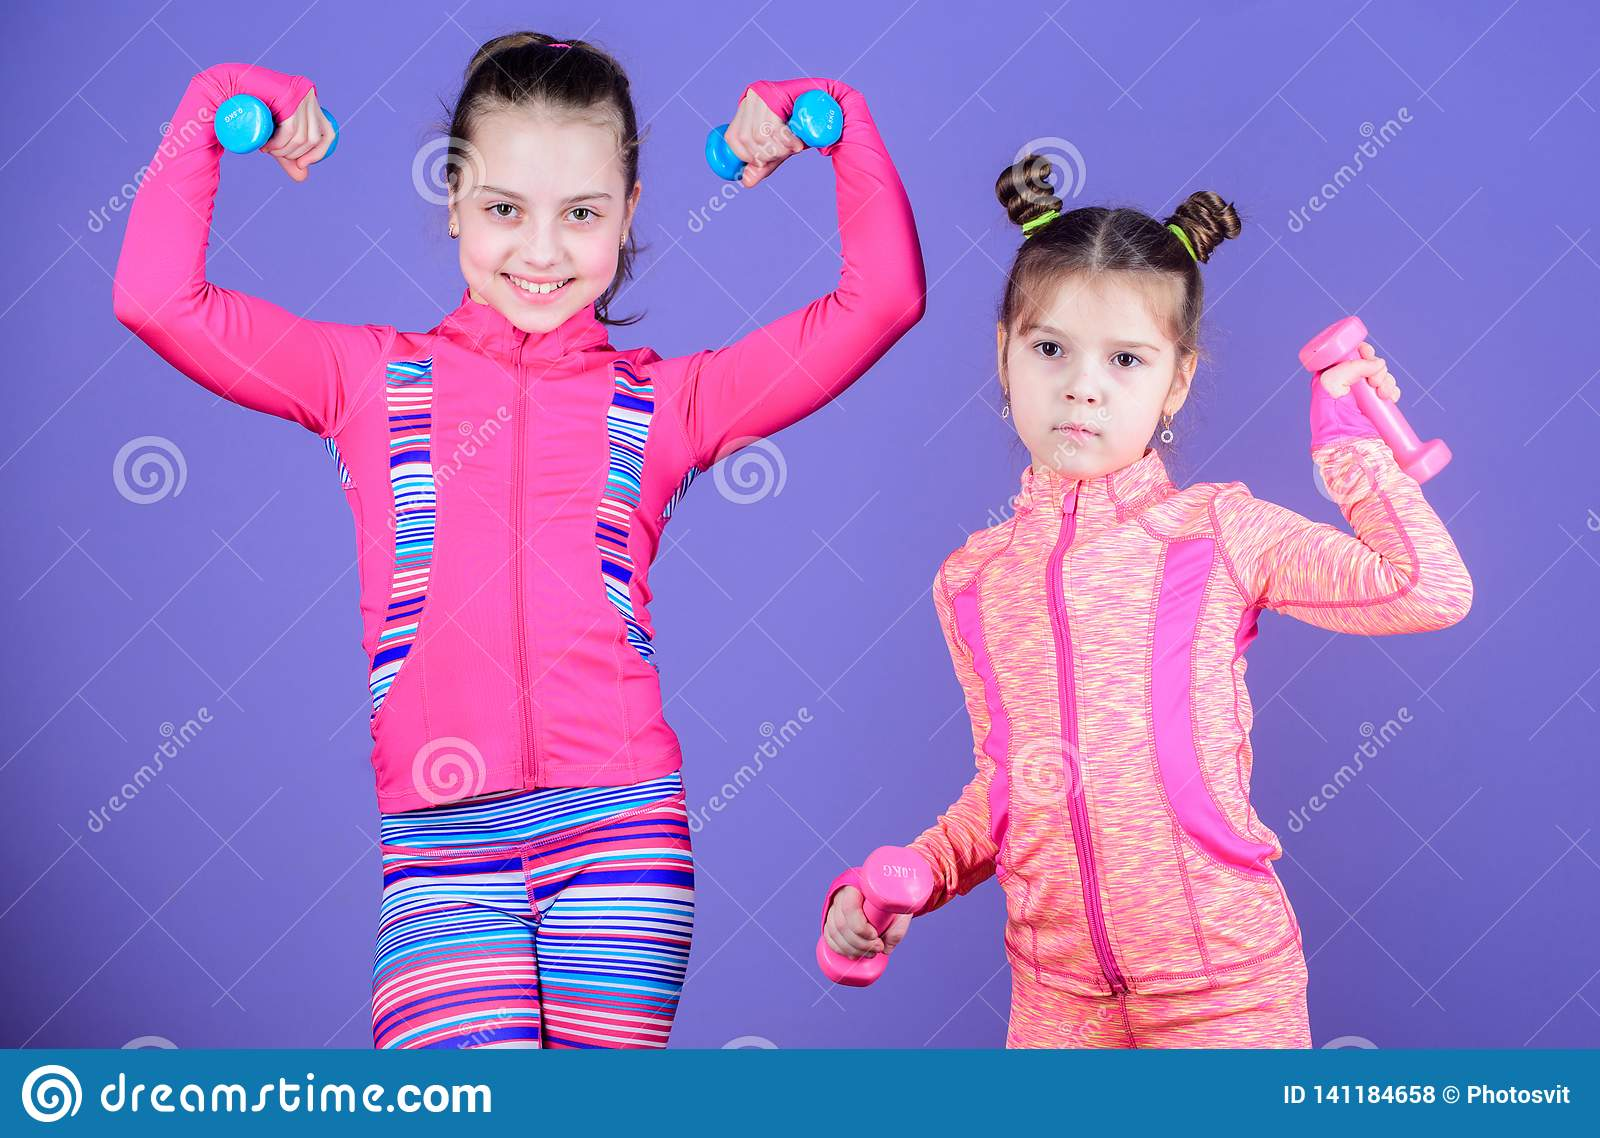 Cute Weight Barbell Sports Kids Dumbbell Gym Training for Home Kids Children